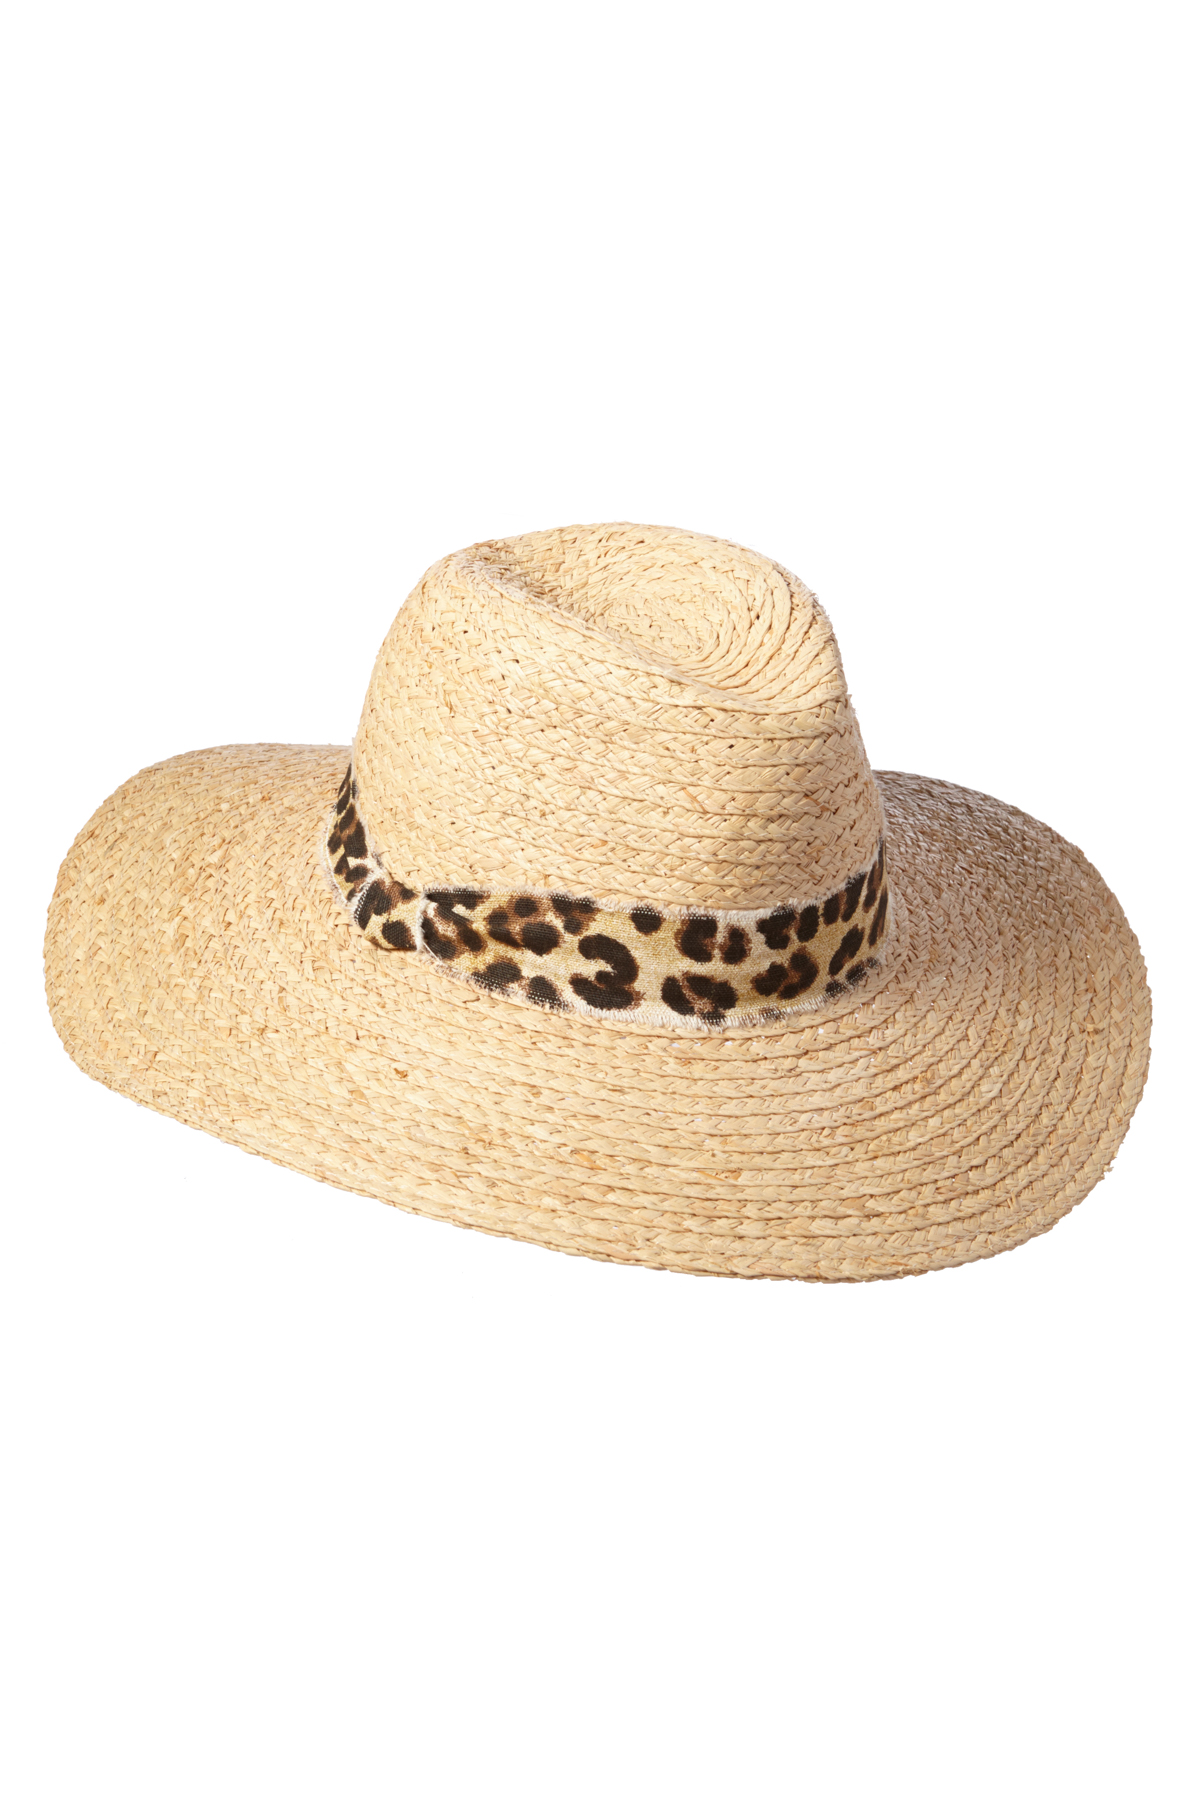 Leopard Print Trim Sun Hat - Natural 1